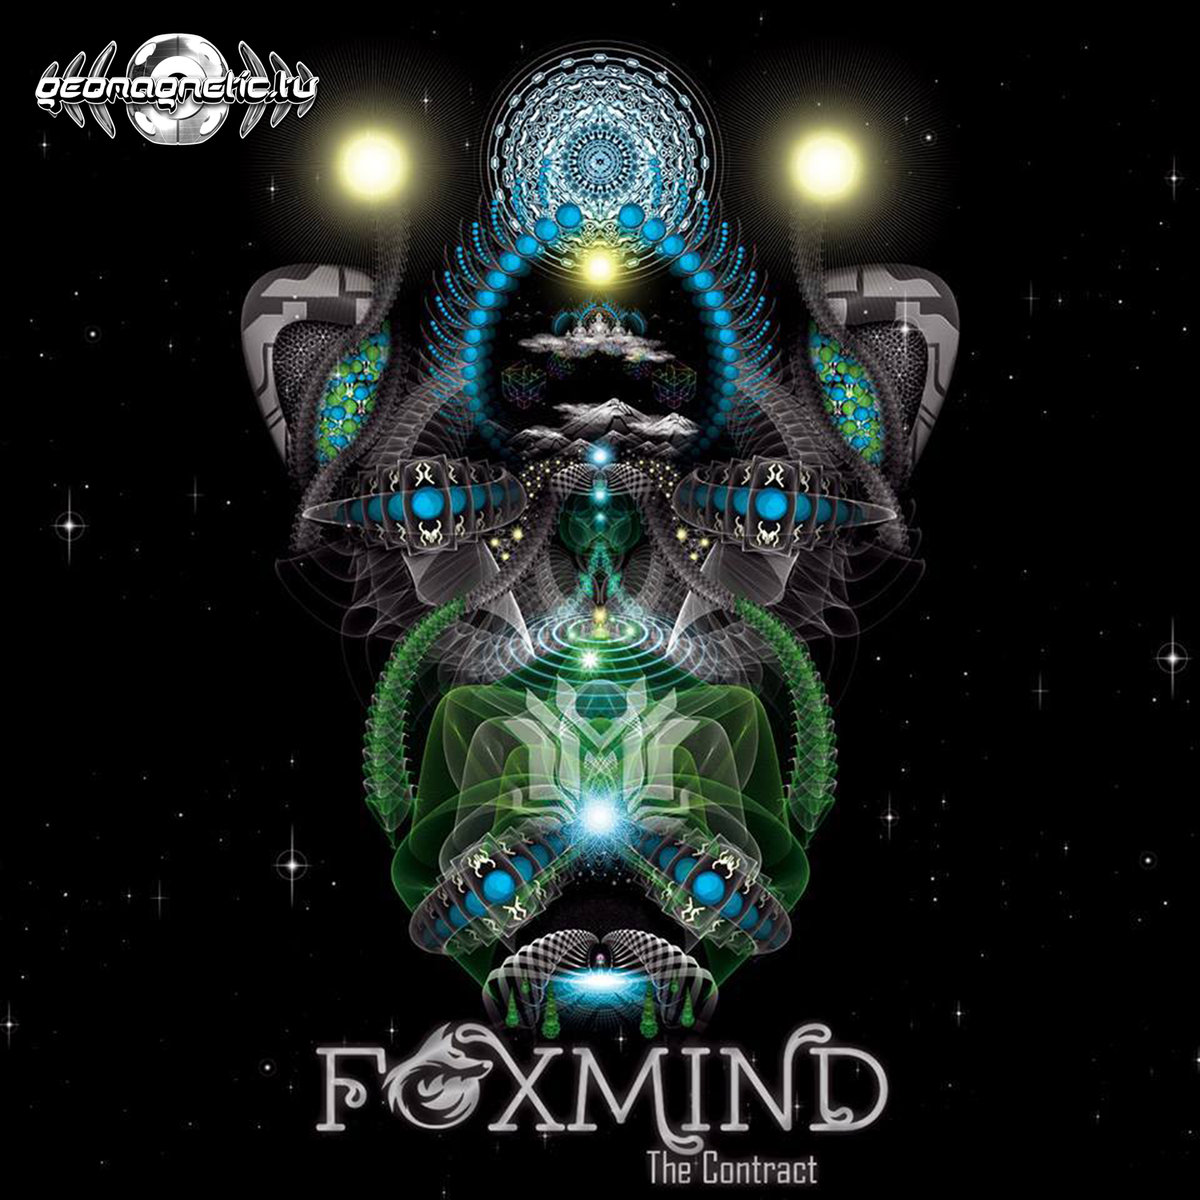 FoxMind - Giant @ 'The Contract' album (electronic, goa)